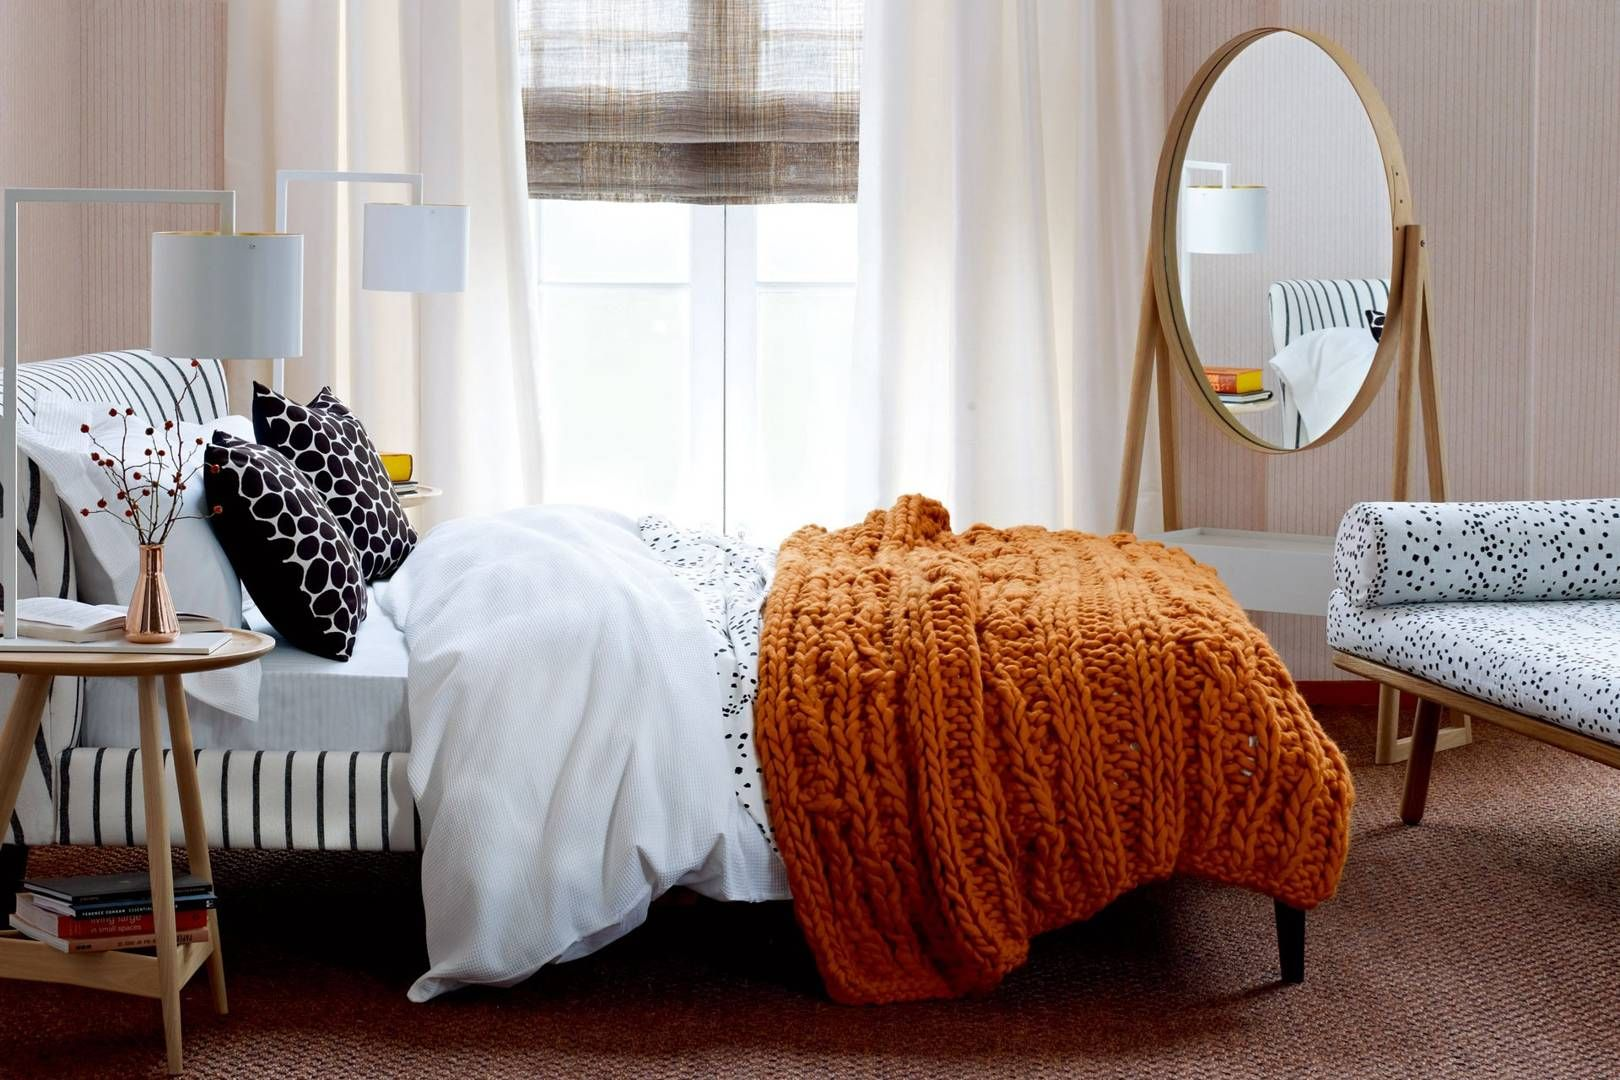 Cheap ways to make your home look stylish Modern bedroom